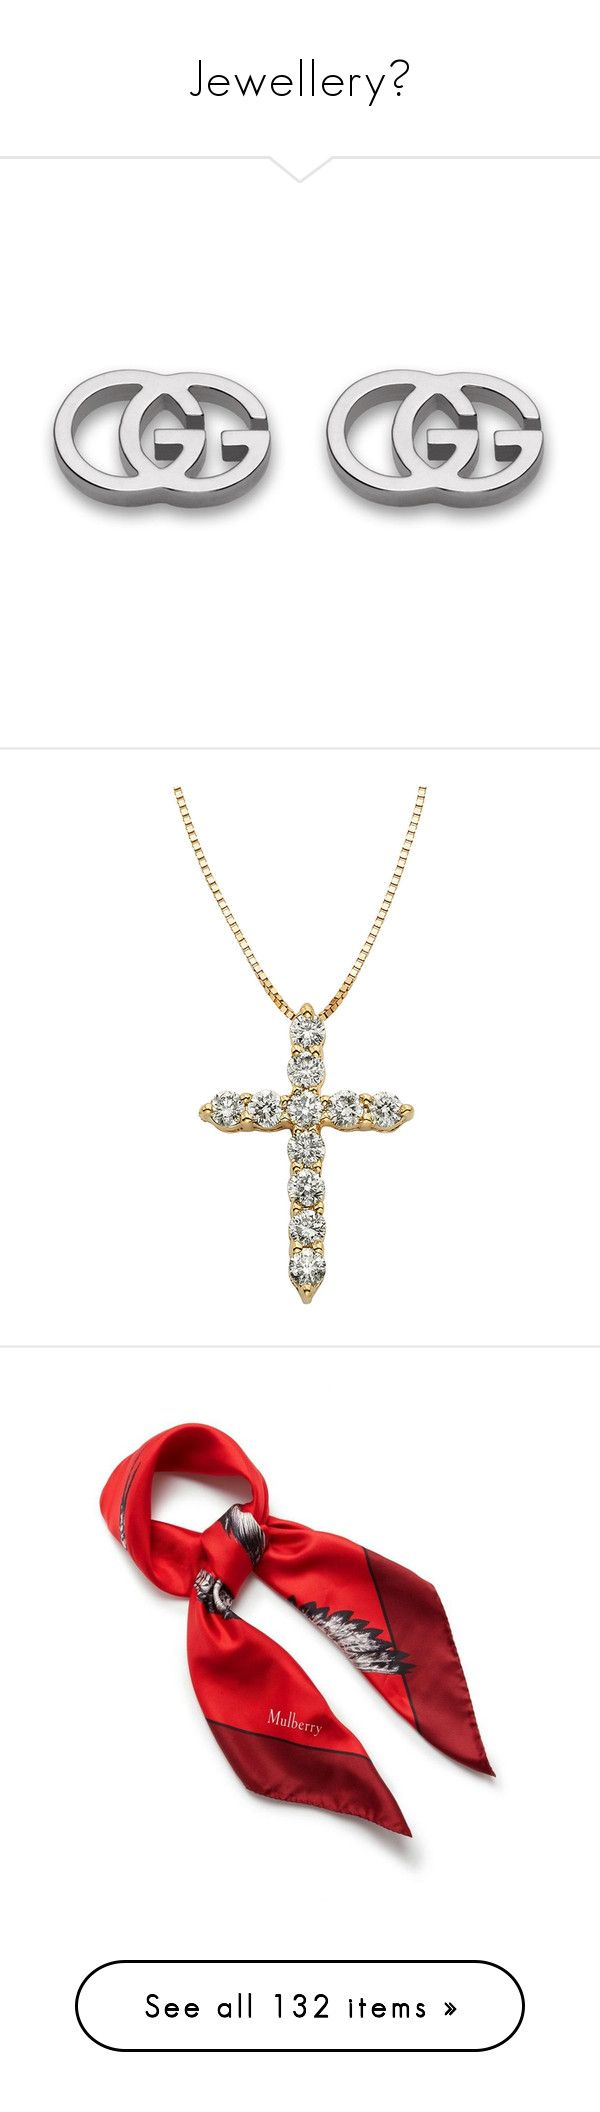 """""""Jewellery🌟"""" by lucia-grigore ❤ liked on Polyvore featuring jewelry, earrings, accessories, gucci, 18k jewelry, 18 karat gold stud earrings, white gold jewelry, 18 karat gold earrings, 18 karat gold jewelry and necklaces"""